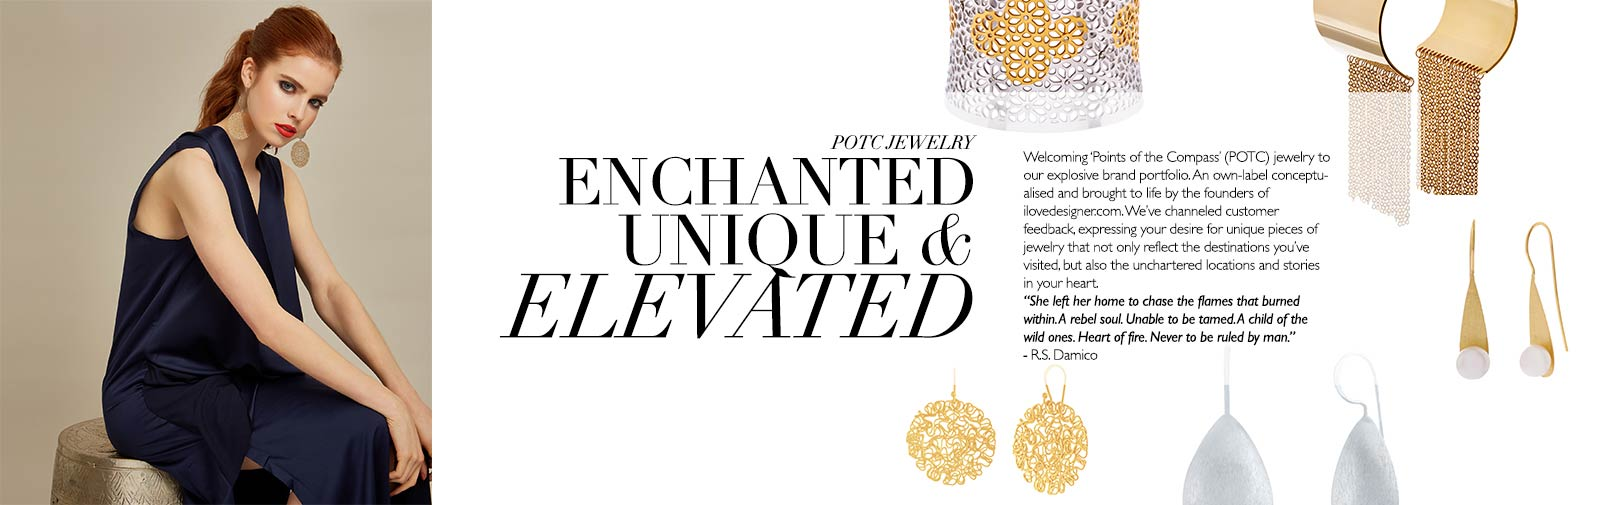 POTC - ENCHANTED UNIQUE & ELEVATED - Our own label conceptualised and brought to life by the founders of ILoveDesigner.com. Points of the Compass encompasses our feedback from our customers, expressing your desire for unique pieces of jewelry that not only reflect the destinations you've visited but also the unchartered locations and stories in your heart.